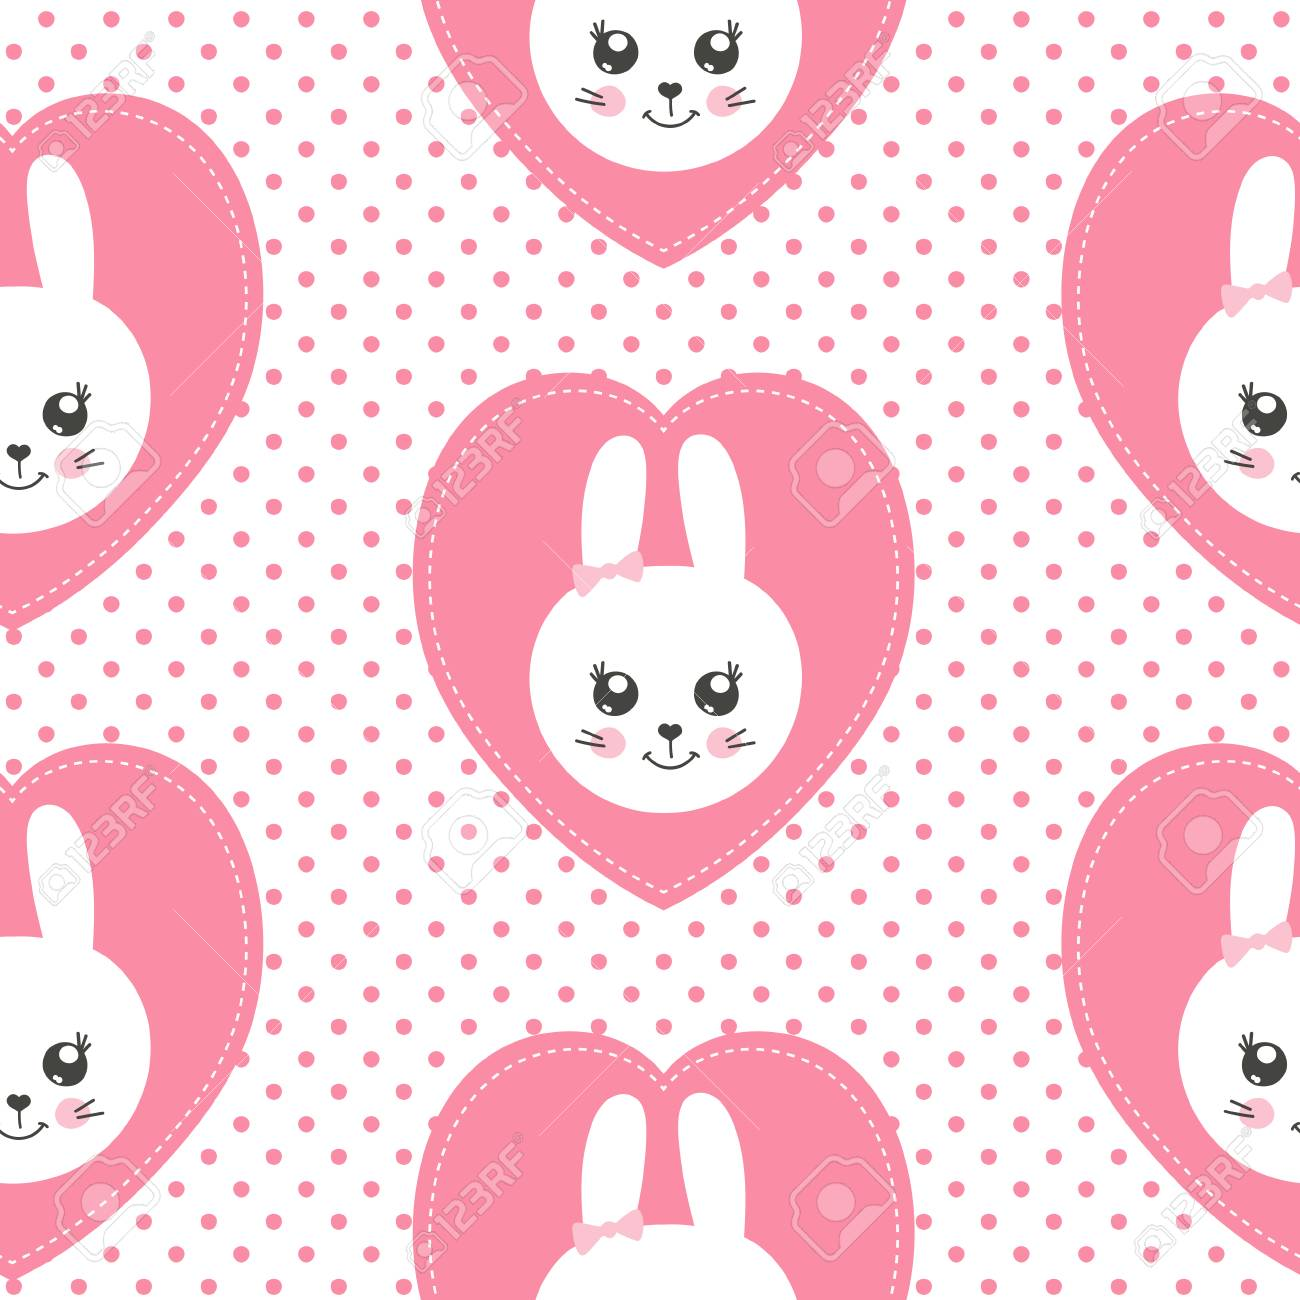 Cute Baby Pattern With Little Bunny Cartoon Animal Girl Print Royalty Free Cliparts Vectors And Stock Illustration Image 103404630